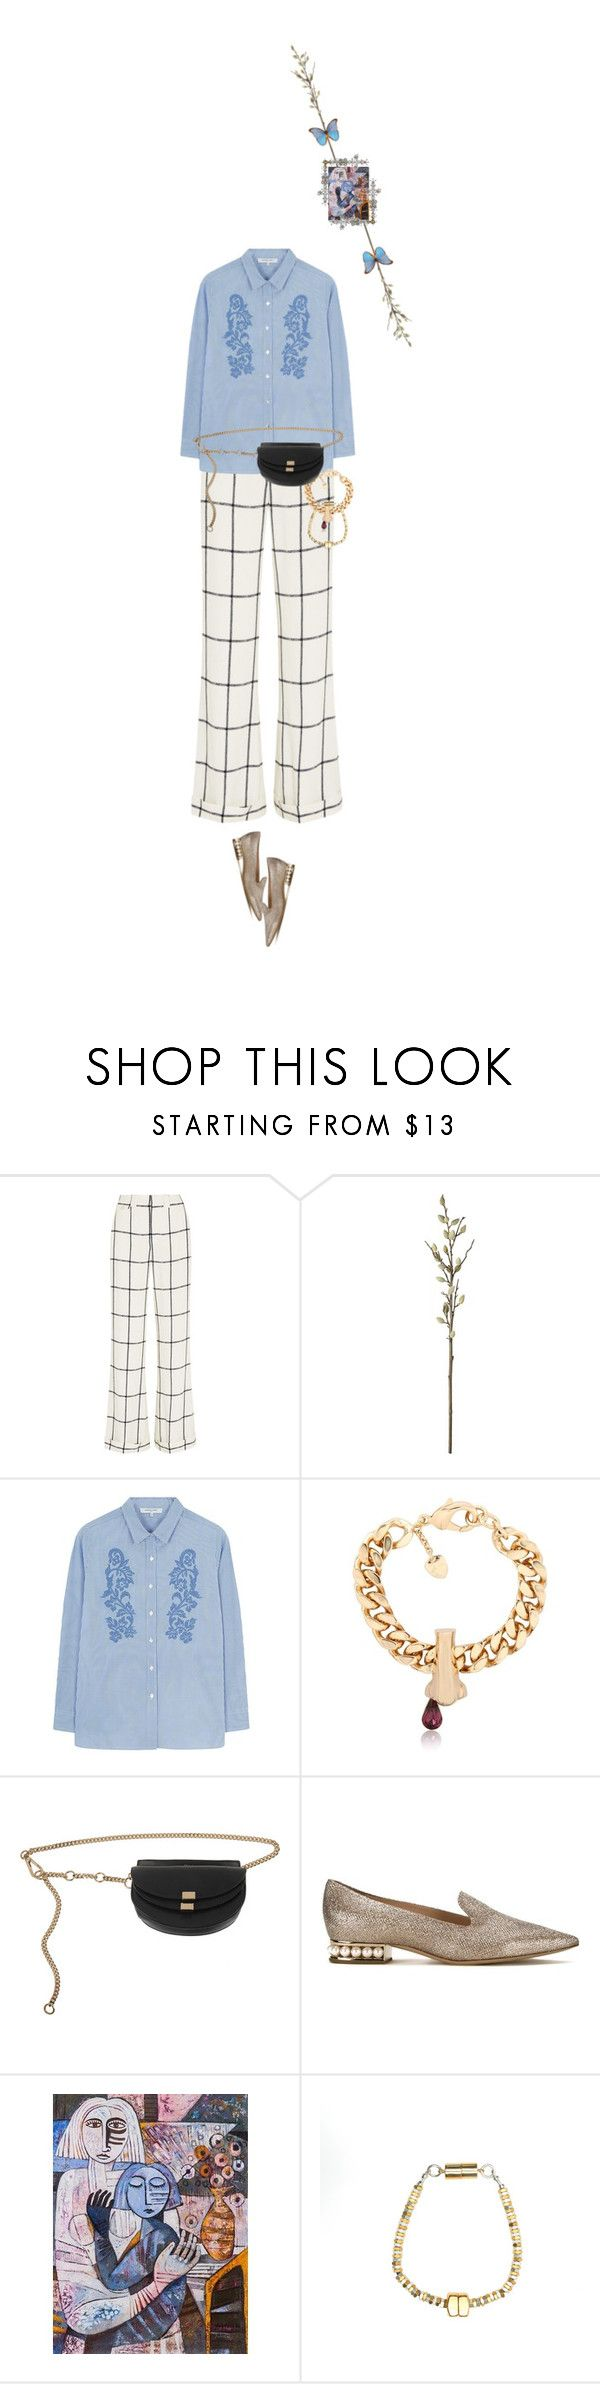 """Untitled #1728"" by maja-z-94 ❤ liked on Polyvore featuring Chloé, CB2, Gérard Darel, Schield Collection, Nicholas Kirkwood, NOVICA and Alice Menter"